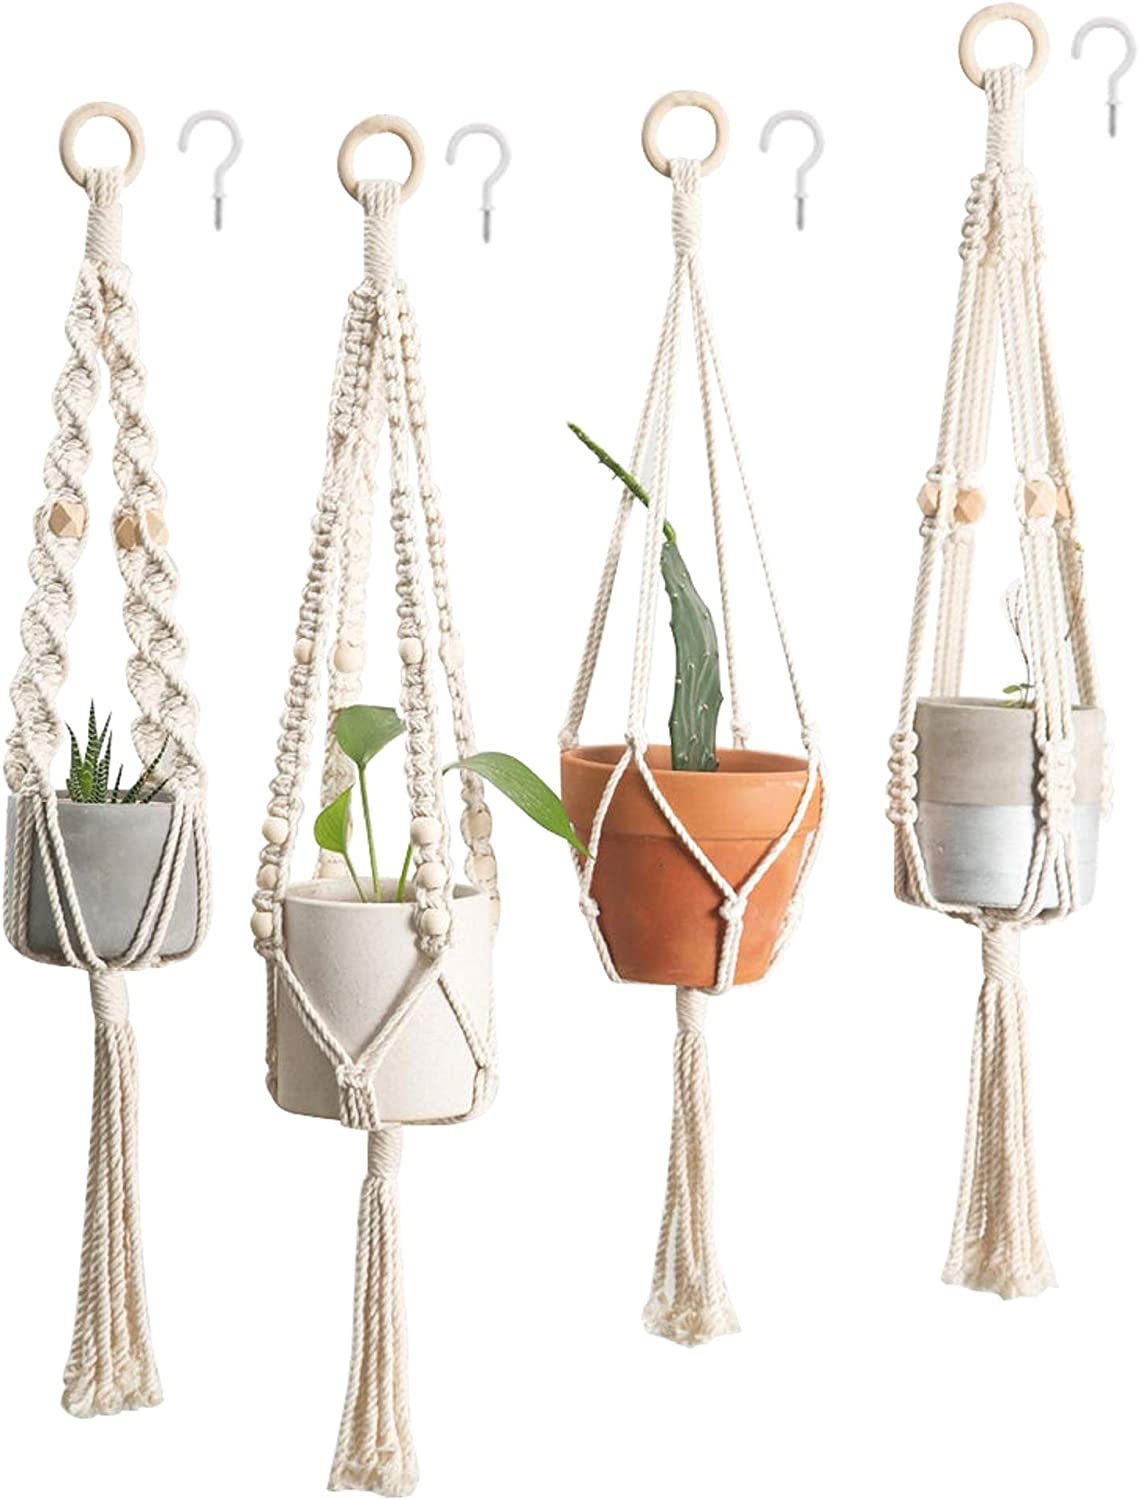 4 Dealing full price reduction Pack Macrame Plant Hangers Crochet with Ha Hooks Factory outlet